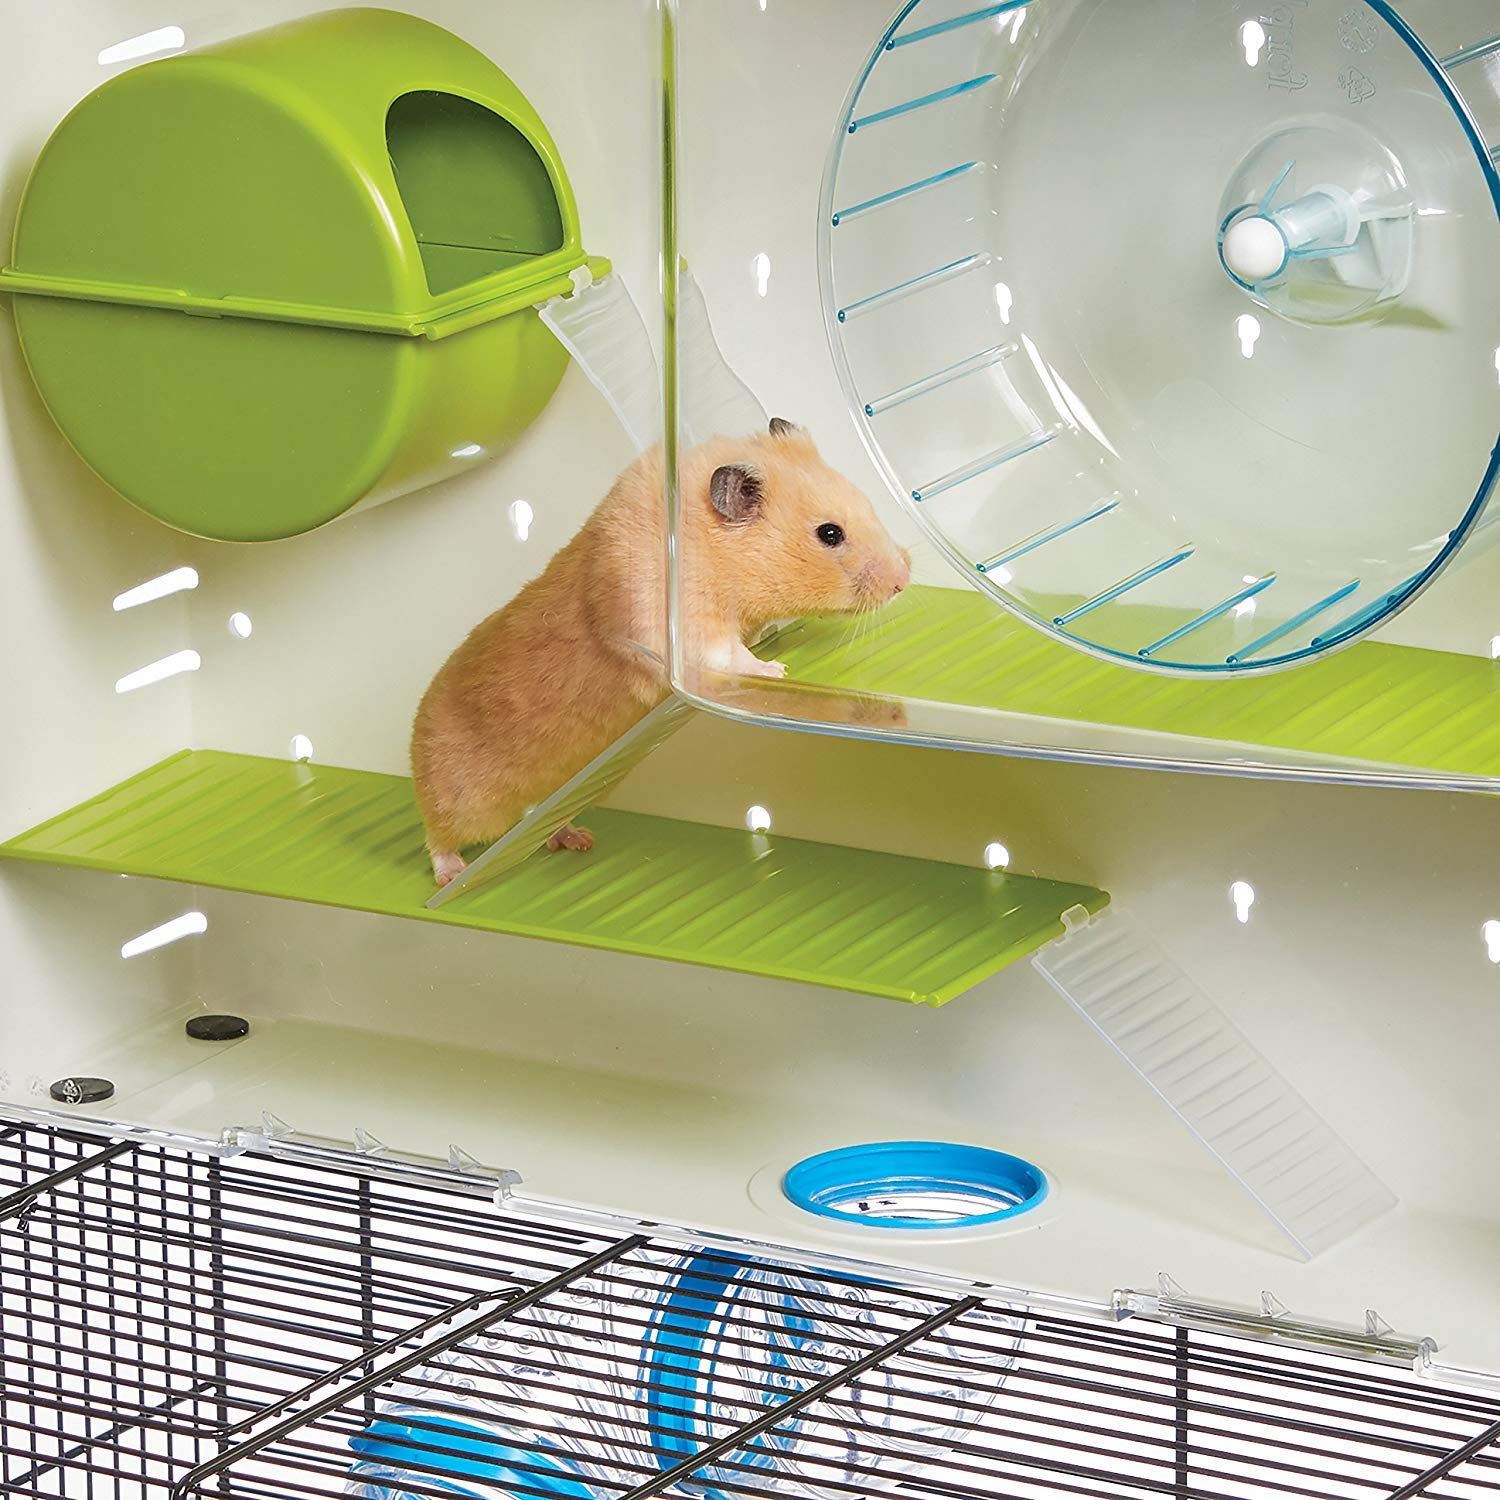 MidWest Homes for Pets Hamster Cage | Awesome Arcade Hamster Home | 18.11'' x 11.61'' x 21.26'' by MidWest Homes for Pets (Image #4)